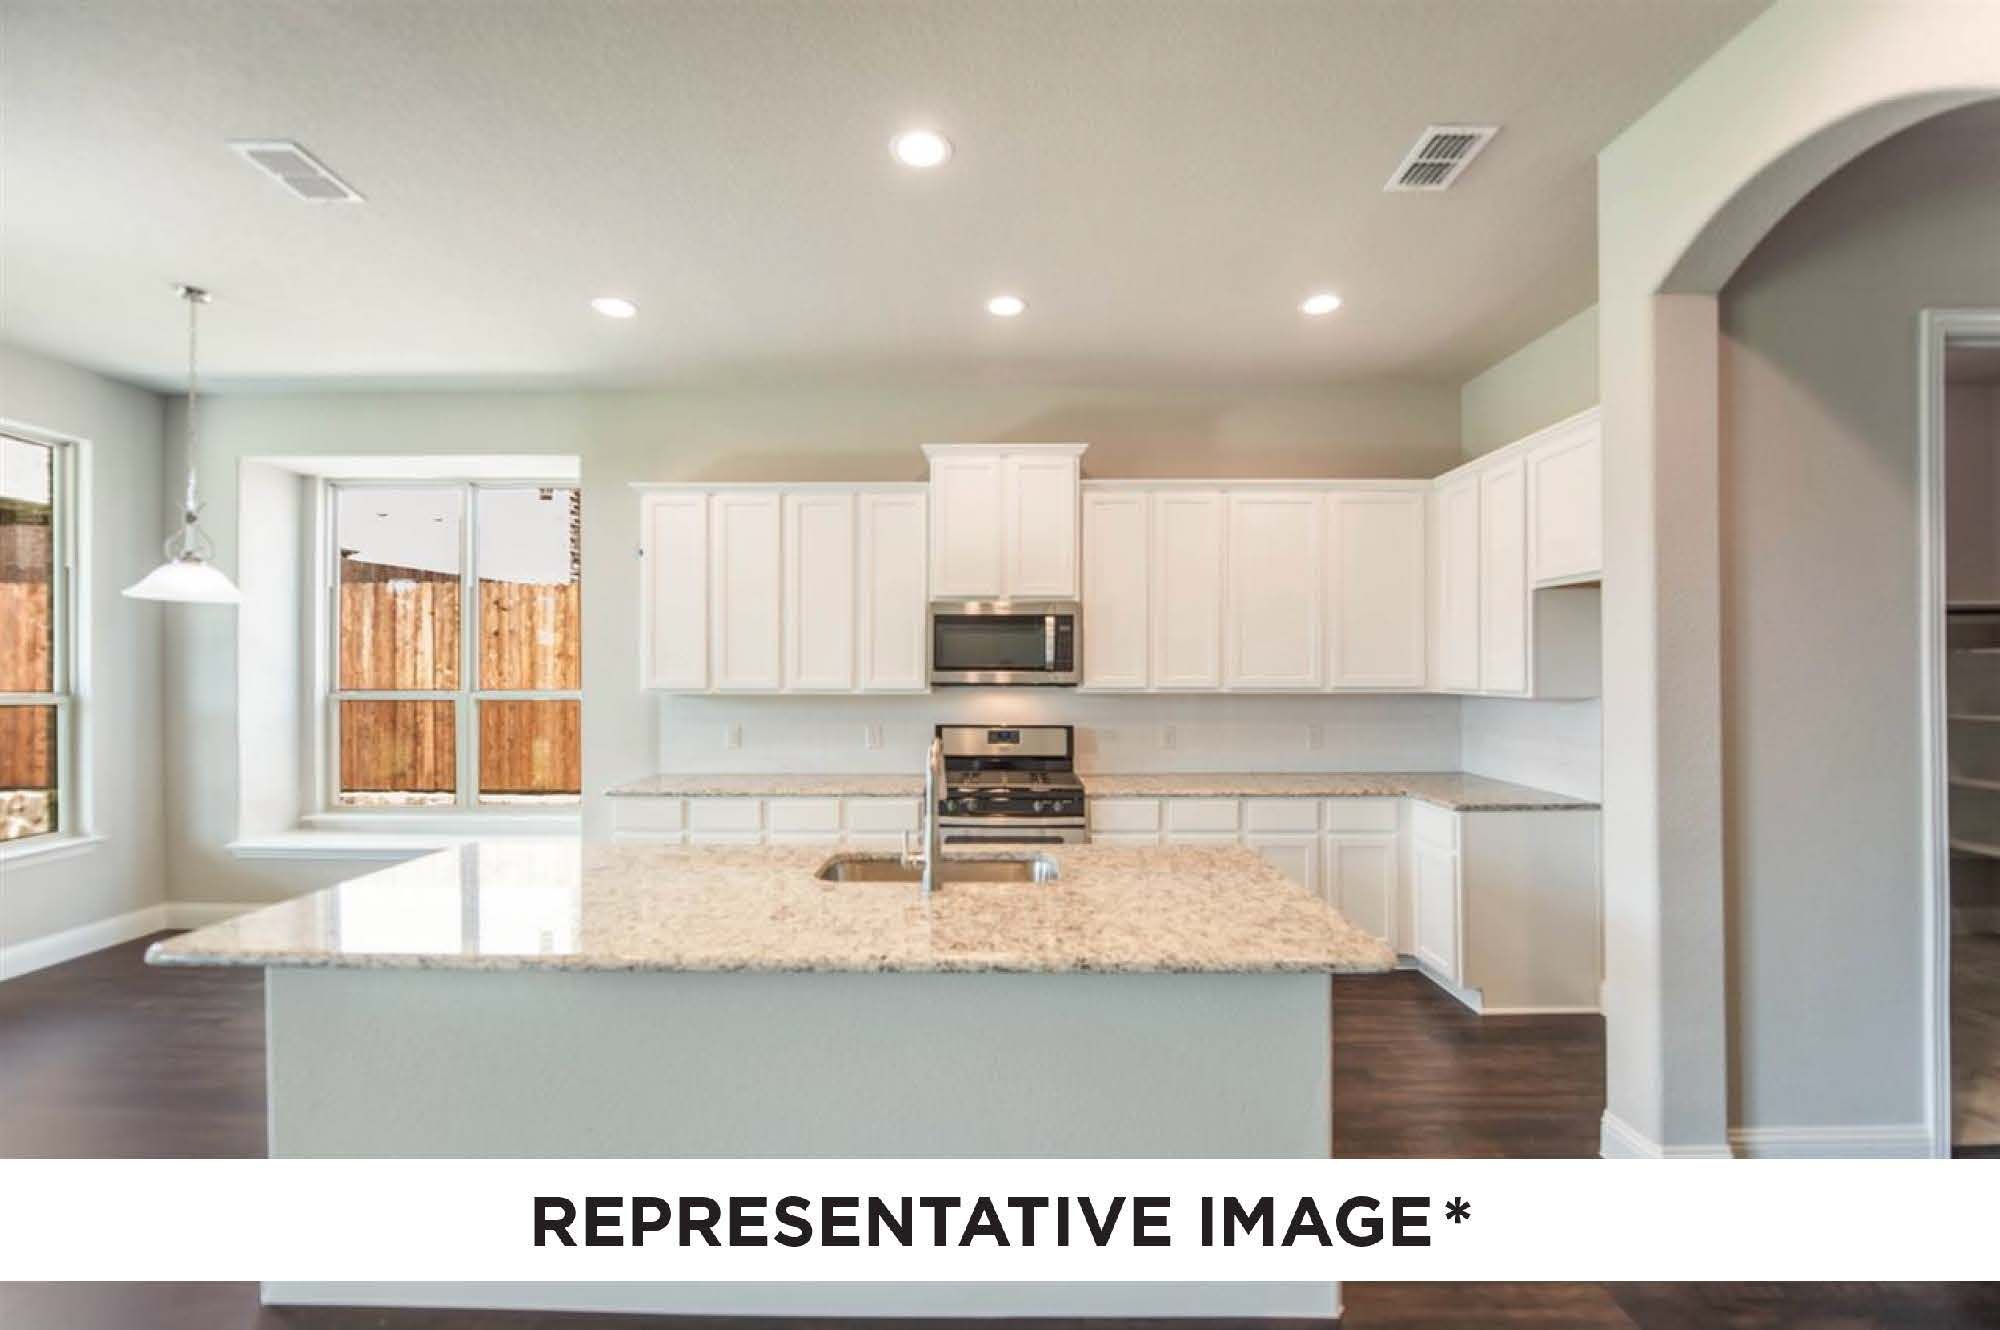 Kitchen featured in the Washington By HistoryMaker Homes    in Houston, TX